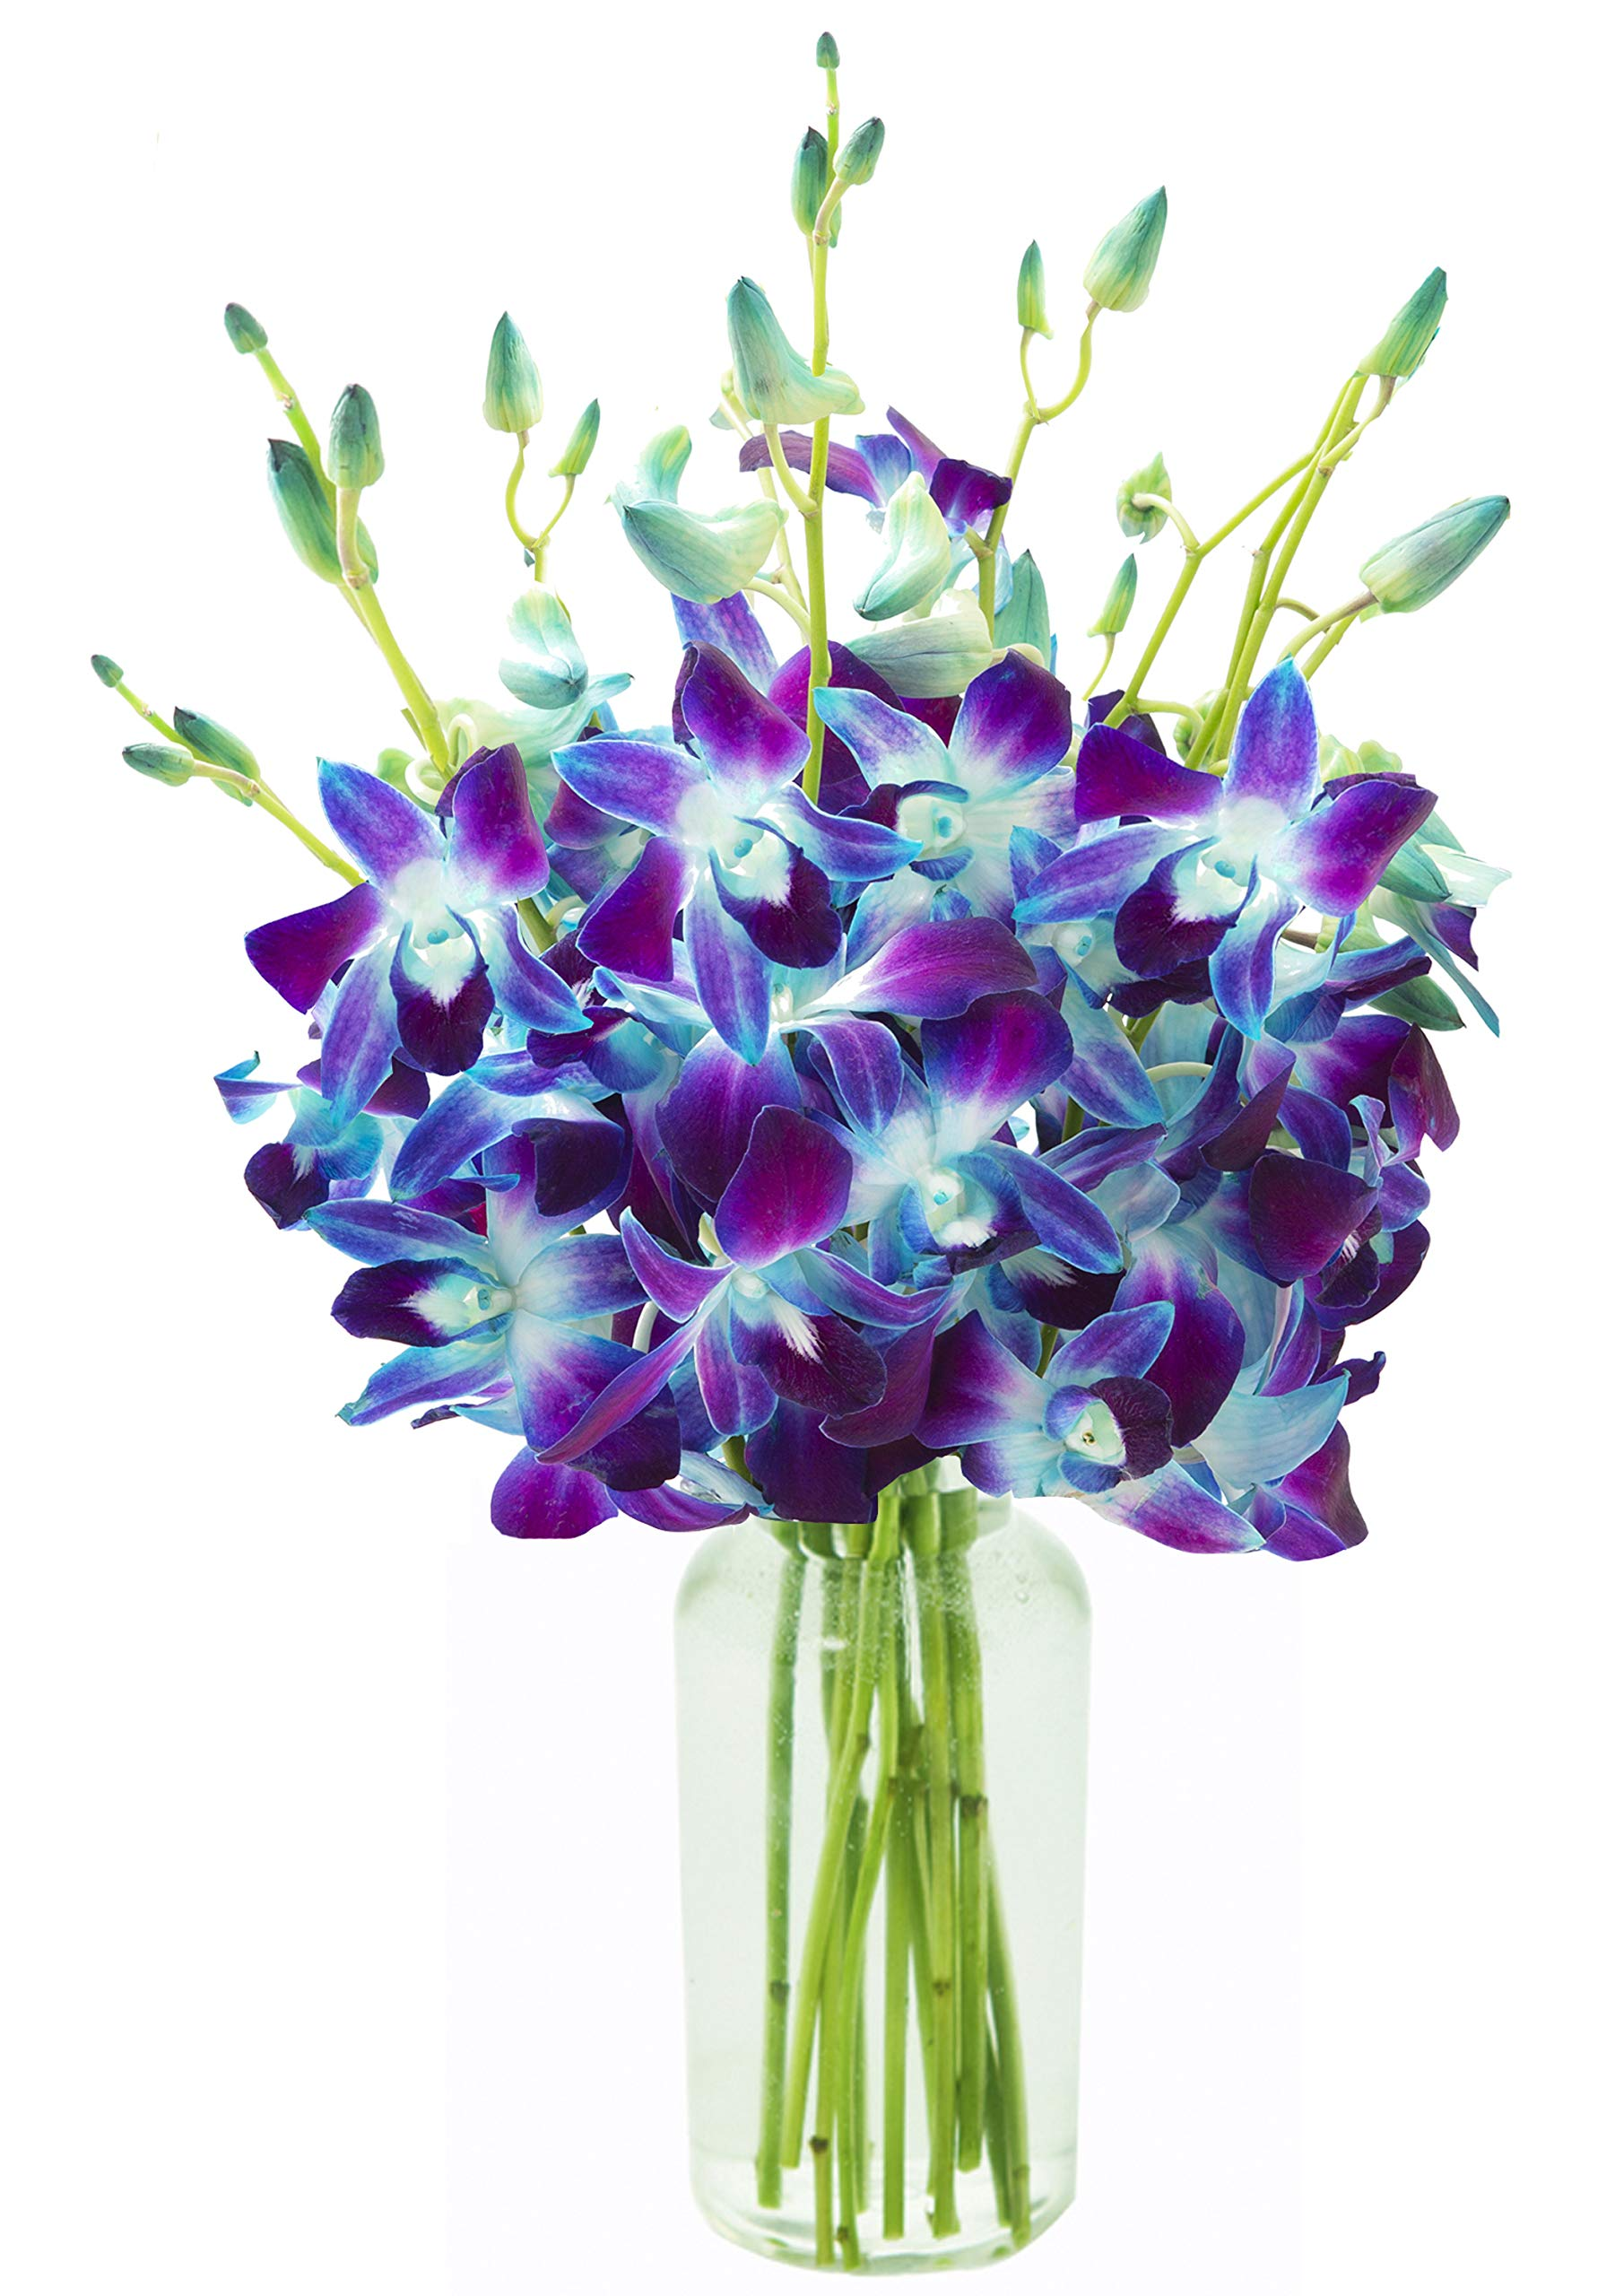 KaBloom Exotic Sapphire Orchid Bouquet of Blue Orchids from Thailand with Vase by KaBloom